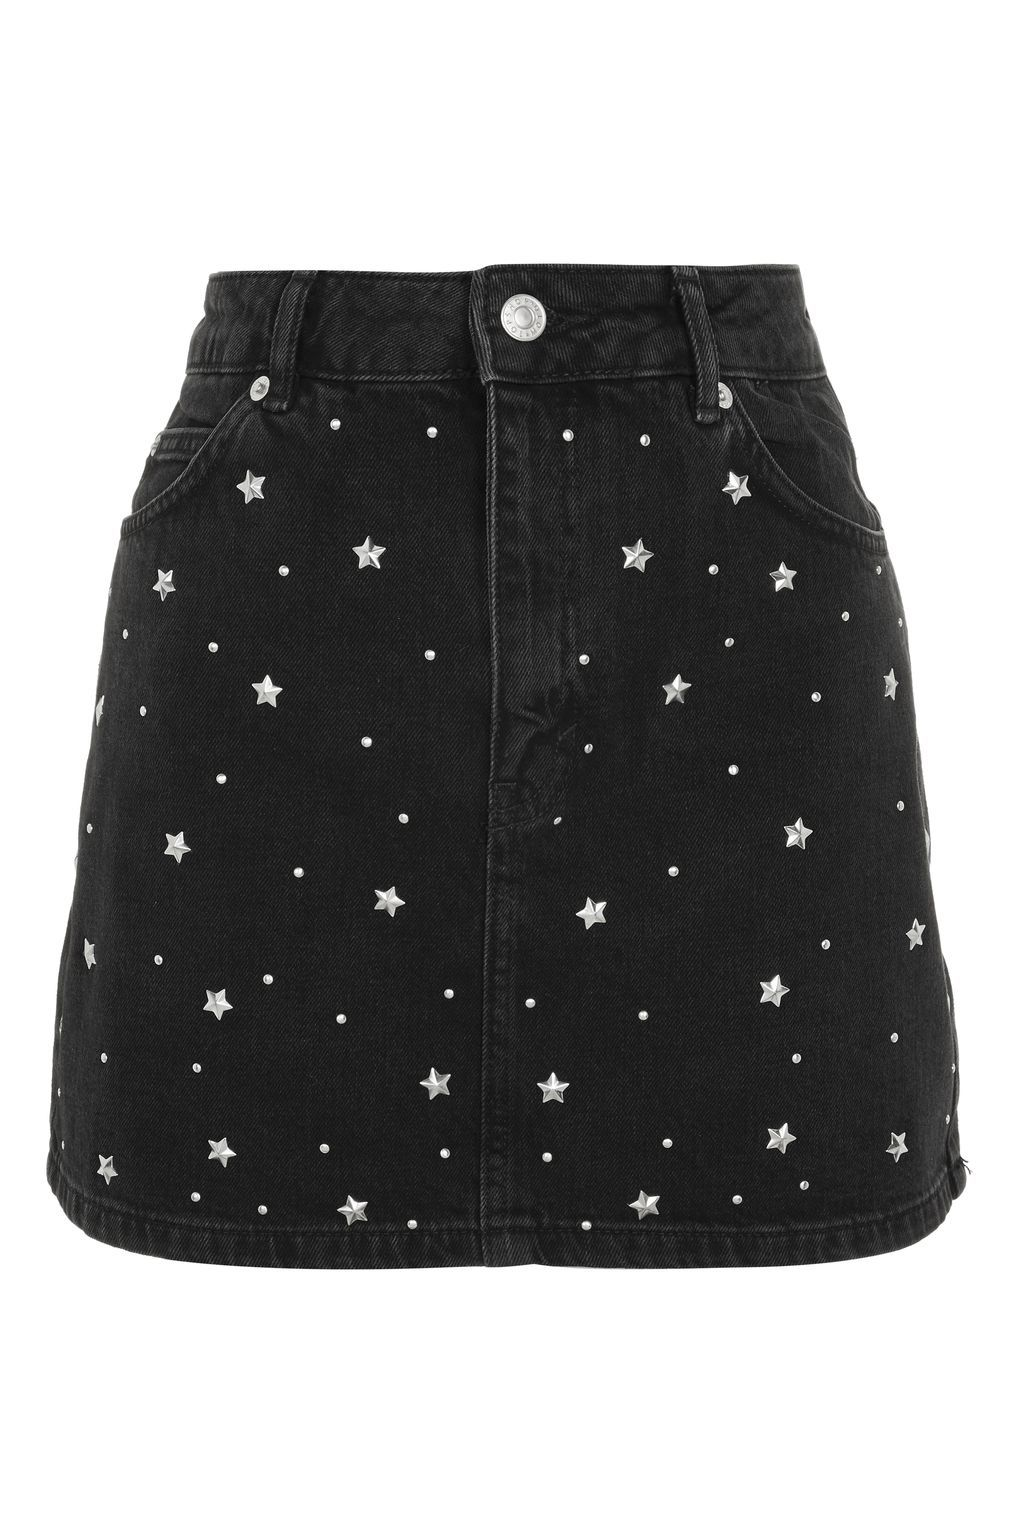 35e2ec332e MOTO Star Stud Denim Skirt in 2019 | Fashion | Studded denim, Black ...